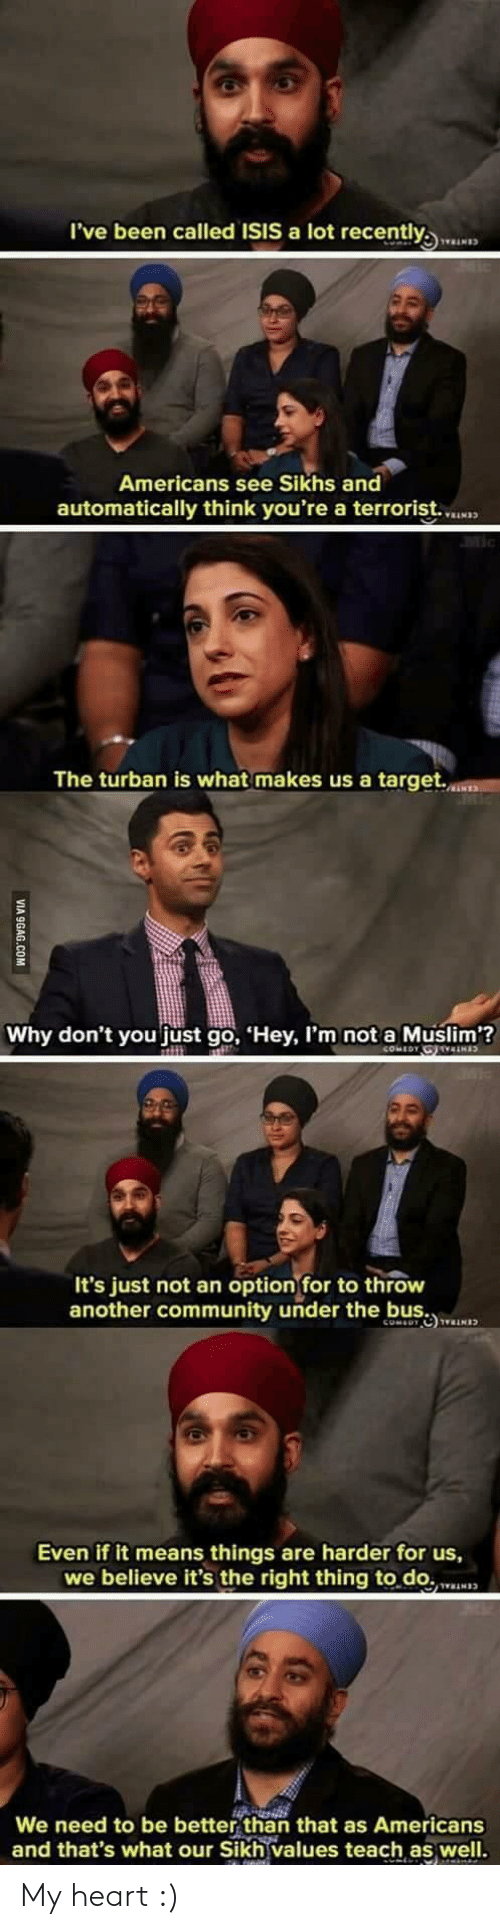 better than that: l've been called ISIS a lot recently  Americans see Sikhs and  automatically think you're a terrorist.  The turban is what makes us a target.  Why don't you just go, Hey, I'm not a Muslim?  It's just not an optionfor to throw  another community under the b  Even if it means things are harder for us,  we believe it's the right thing to.do.N  We need to be better than that as Americans  and that's what our Sikh values teach as well. My heart :)